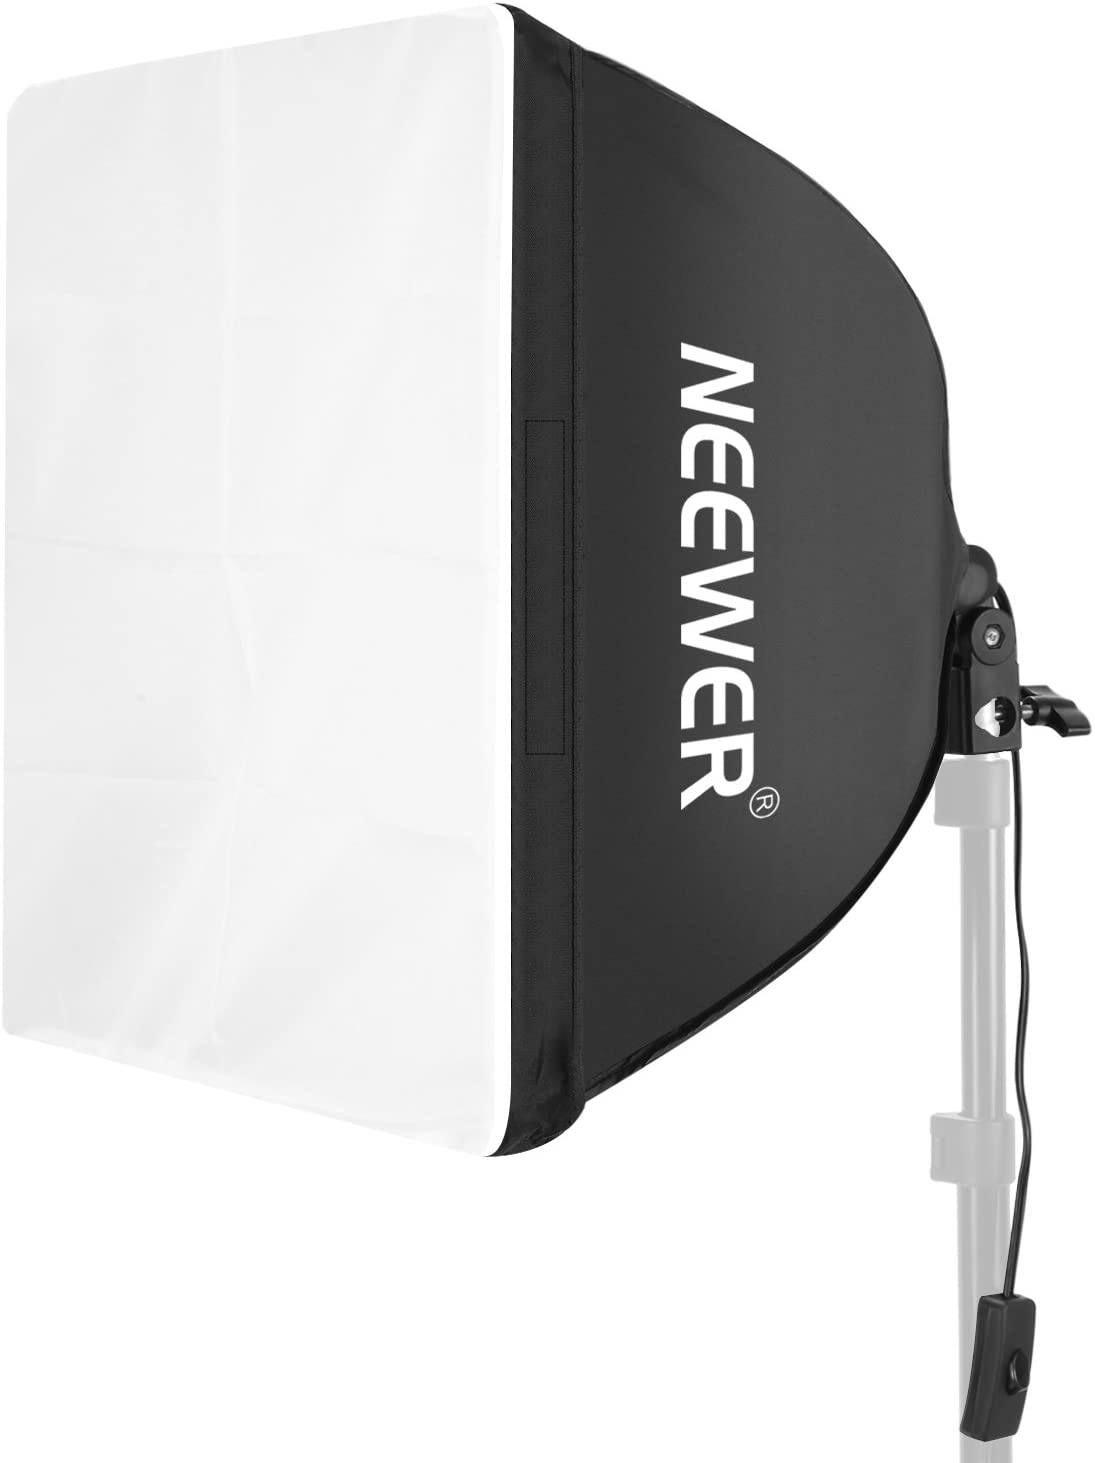 """Neewer 16""""x16""""/40cmx40cm Photography Photo Video Studio Wired Softbox Flash Light Lighting Diffuser with E27 Socket for Fluorescent Bulb Lamp"""